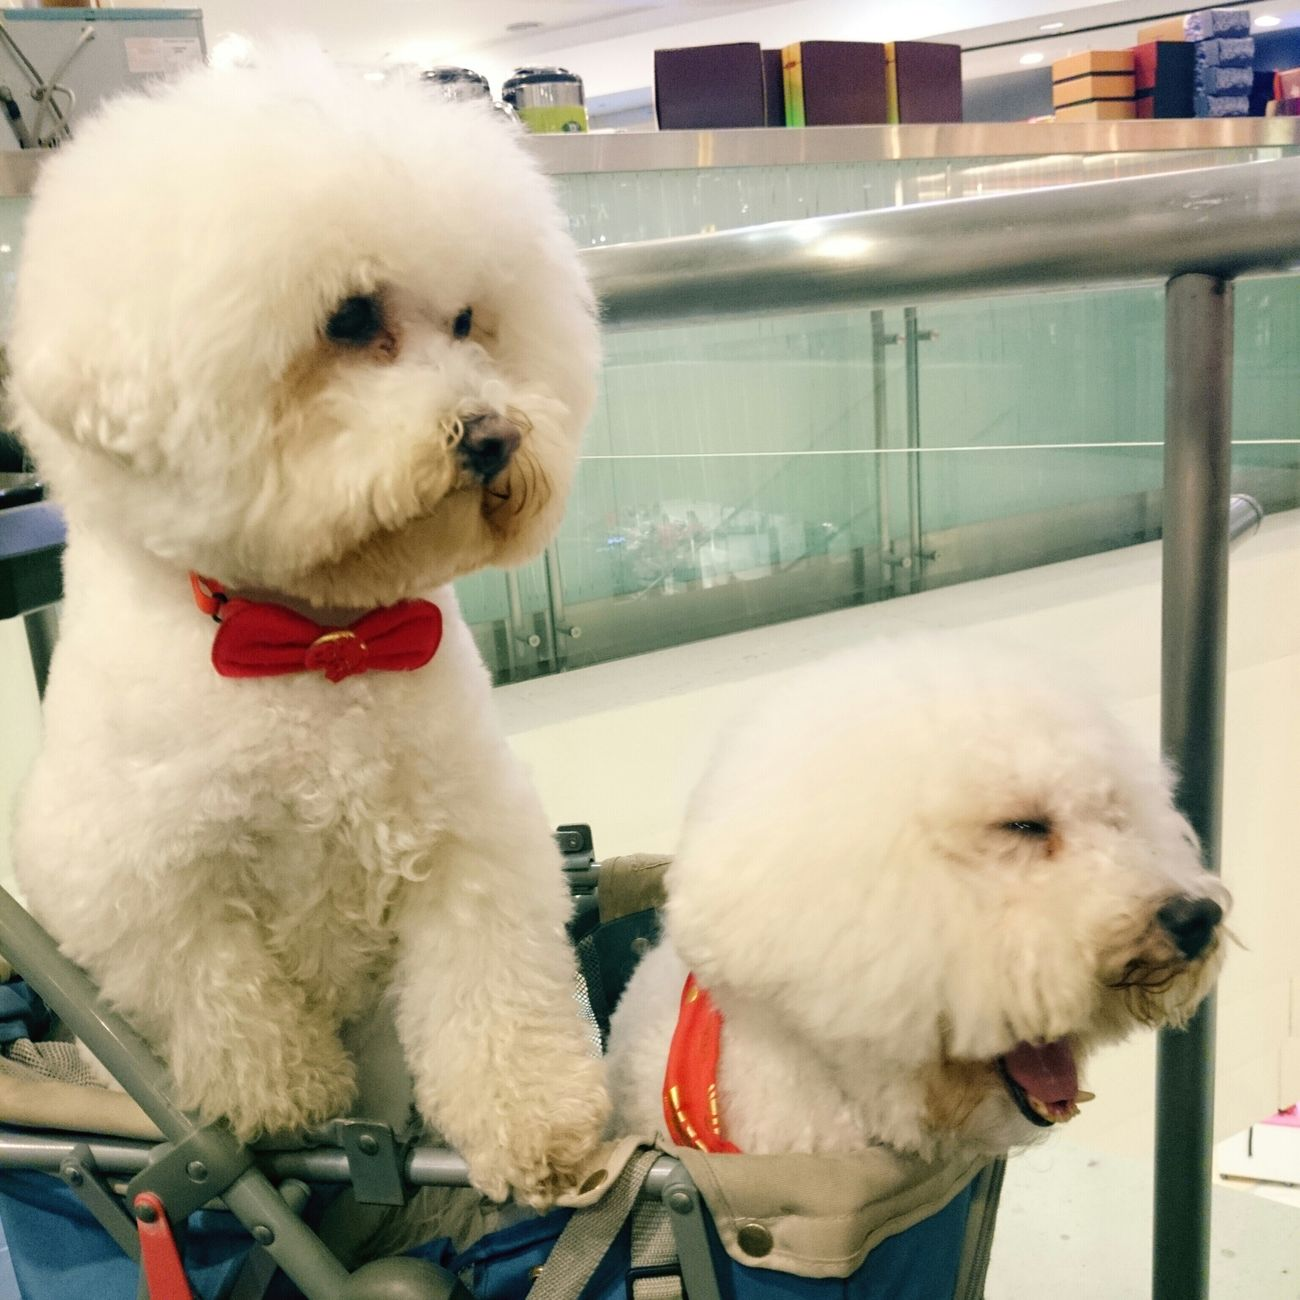 Again, Tony is tired of waiting in the stroller. Tony用哈欠抗議不想待在車裡。 比熊 比熊犬 寵物 Bichon Bichonfrise ビションフリーゼ Pet Puppy Fluffy Dog